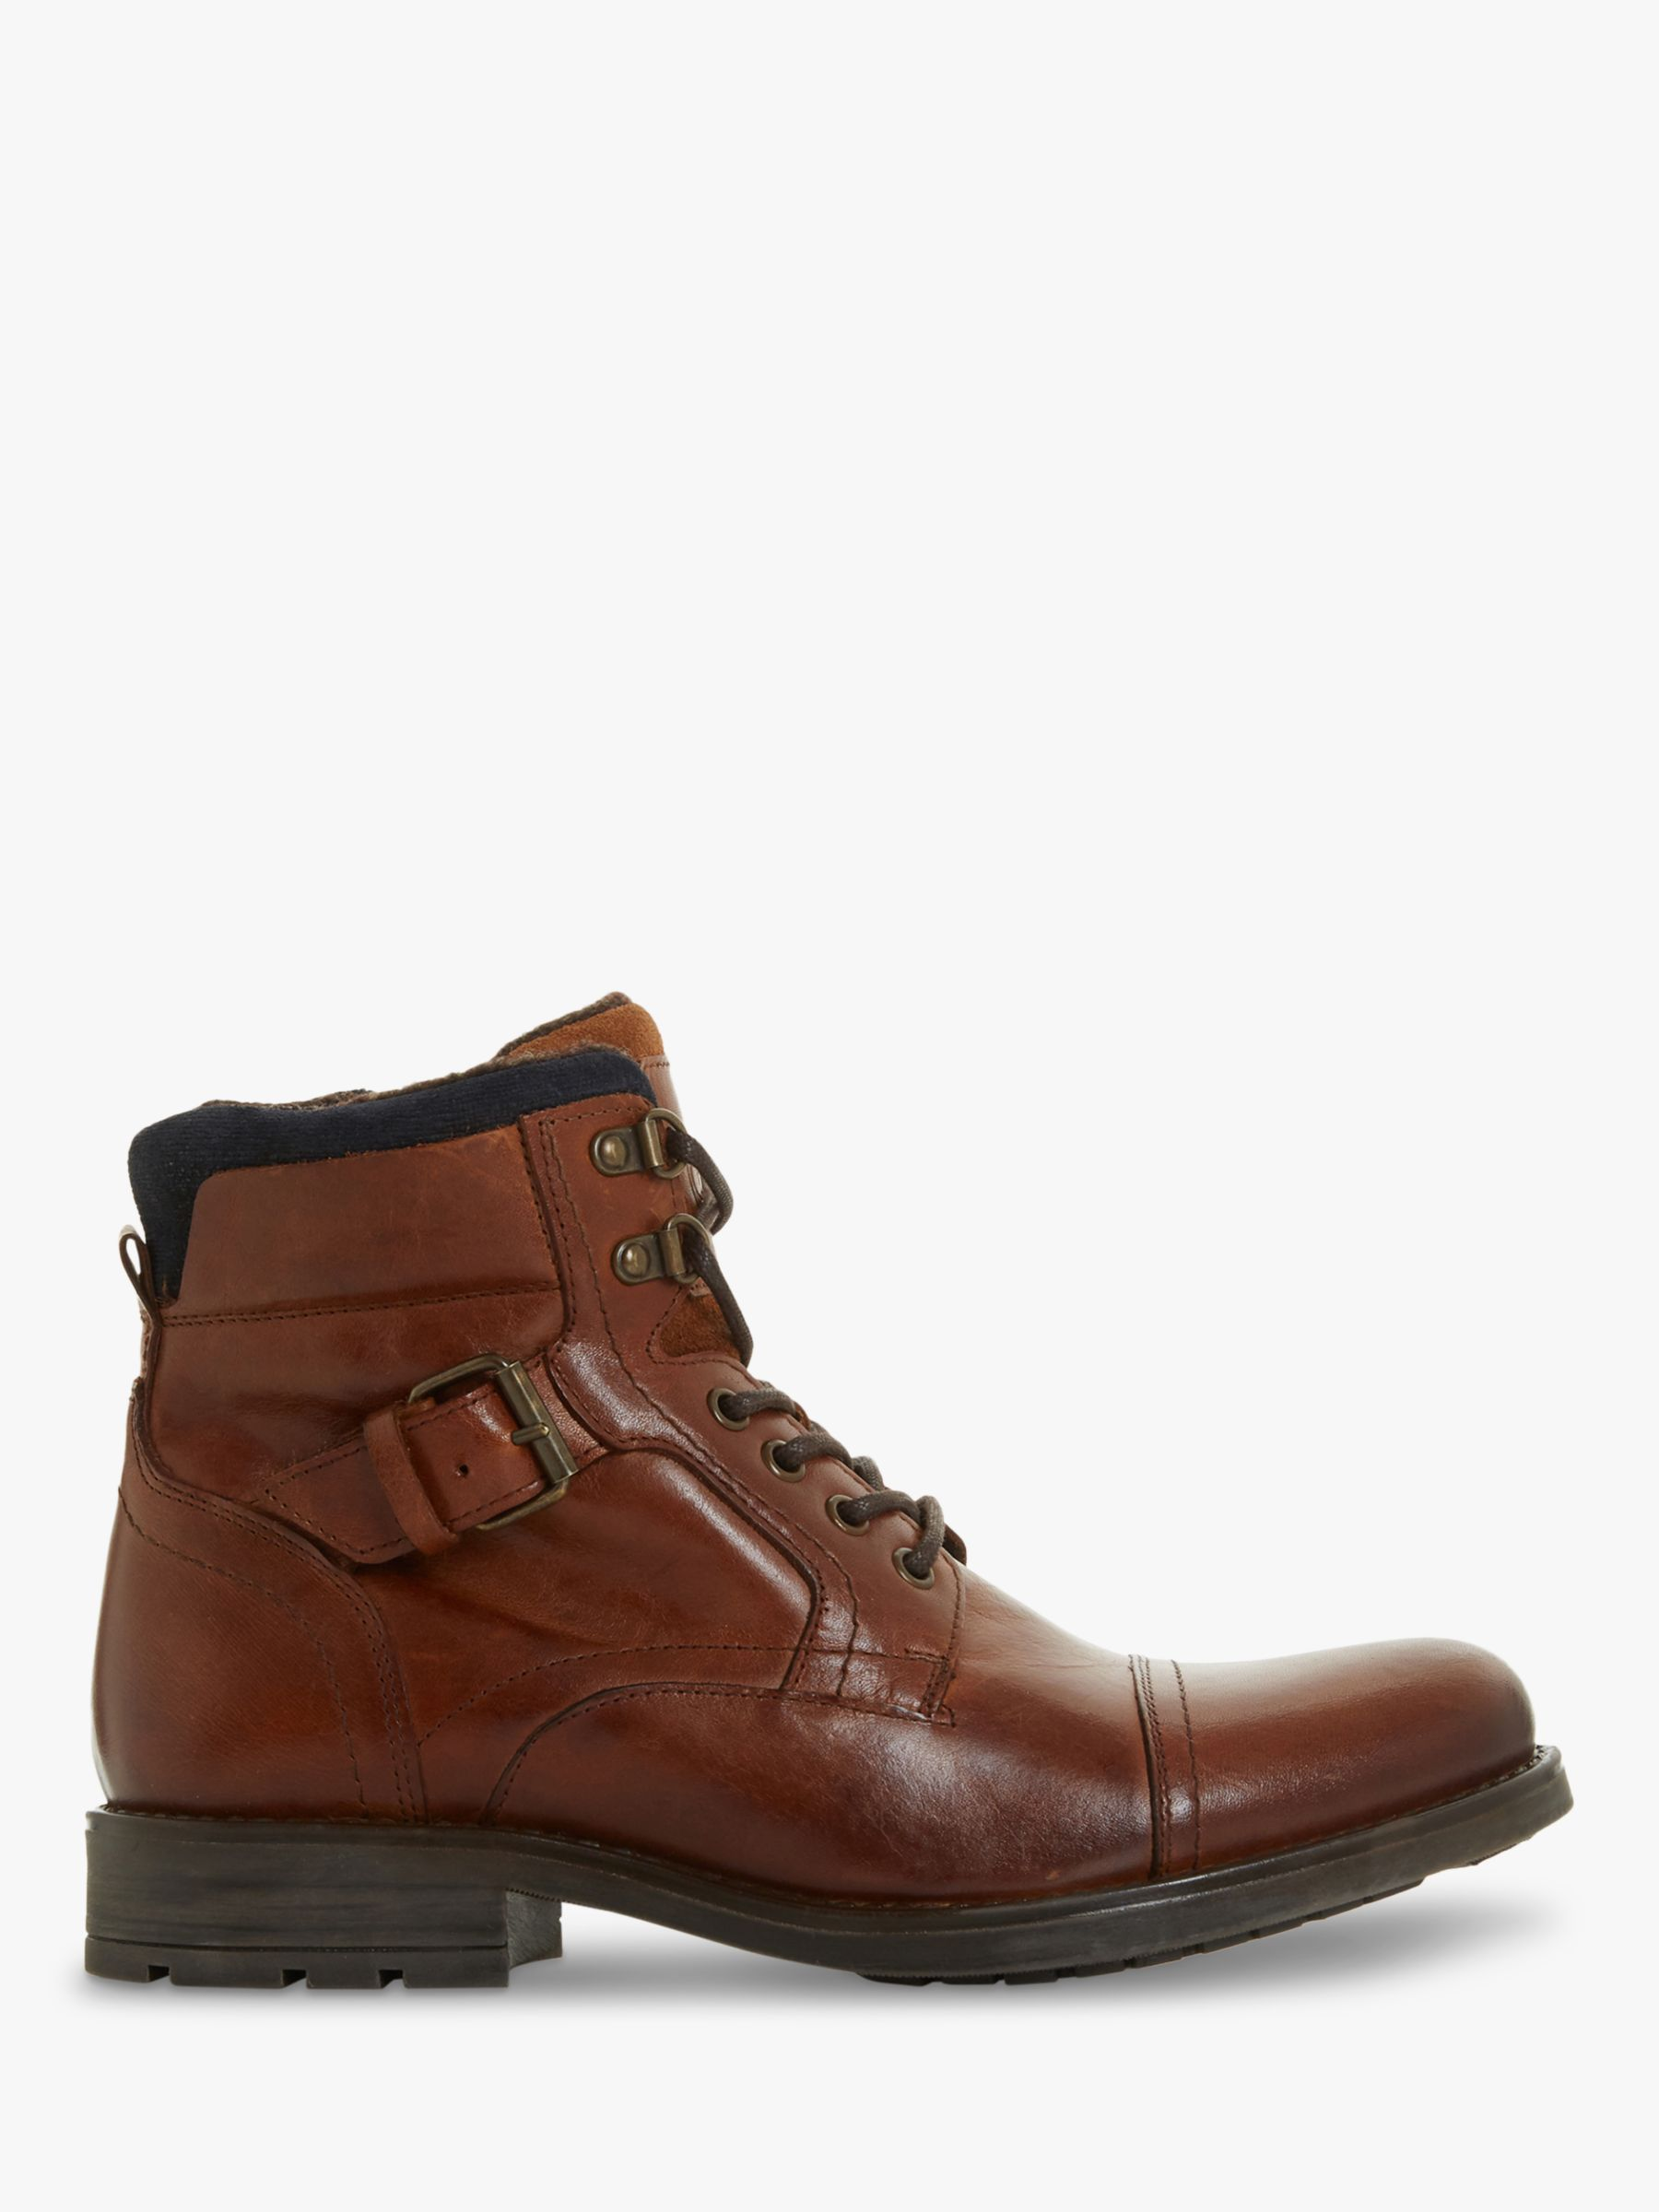 Dune Dune Commonn Leather Boots, Tan